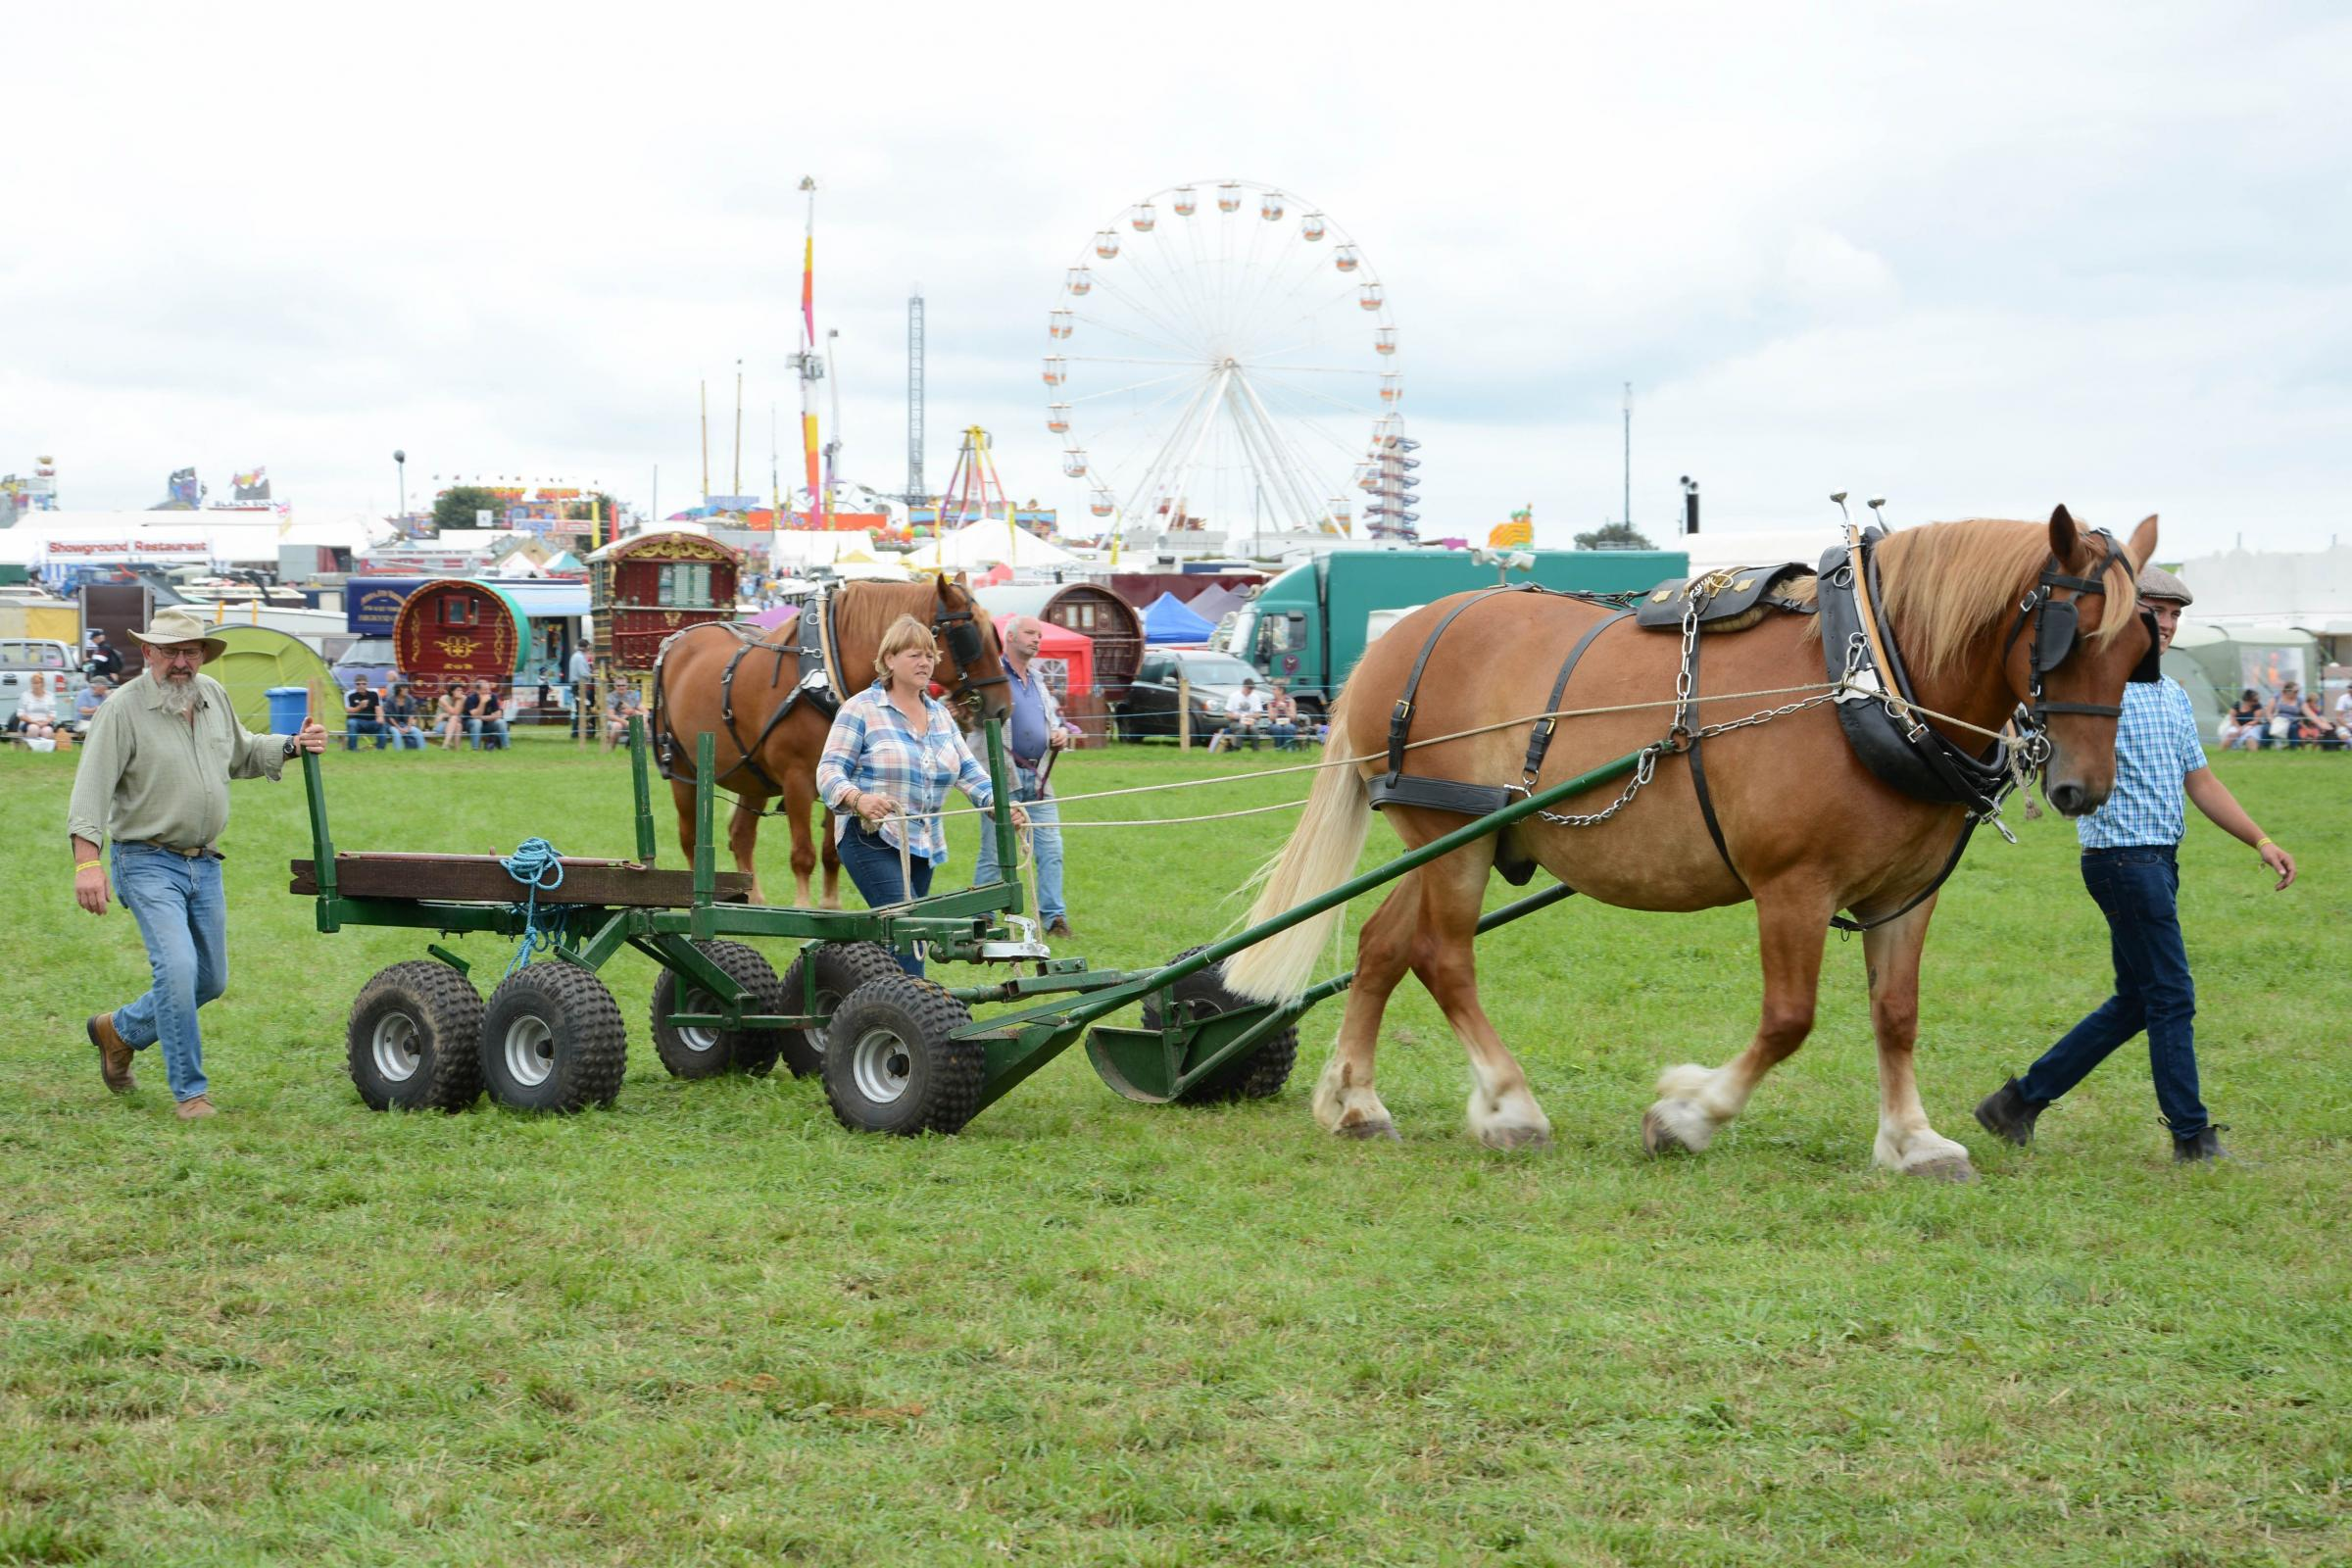 All you need to know about this year's Great Dorset Steam Fair